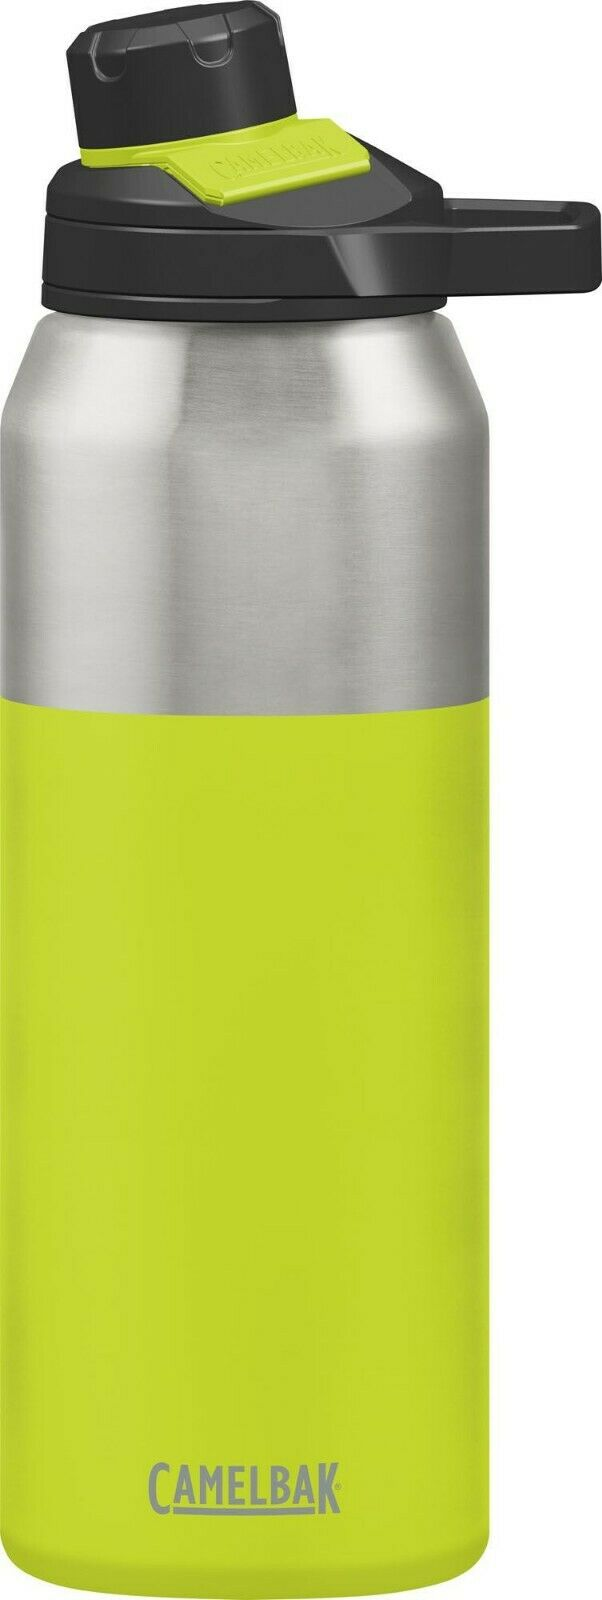 Camelbak Chute Mag Vacuum Insulated Stainless Bottle 32 oz   1L LIME